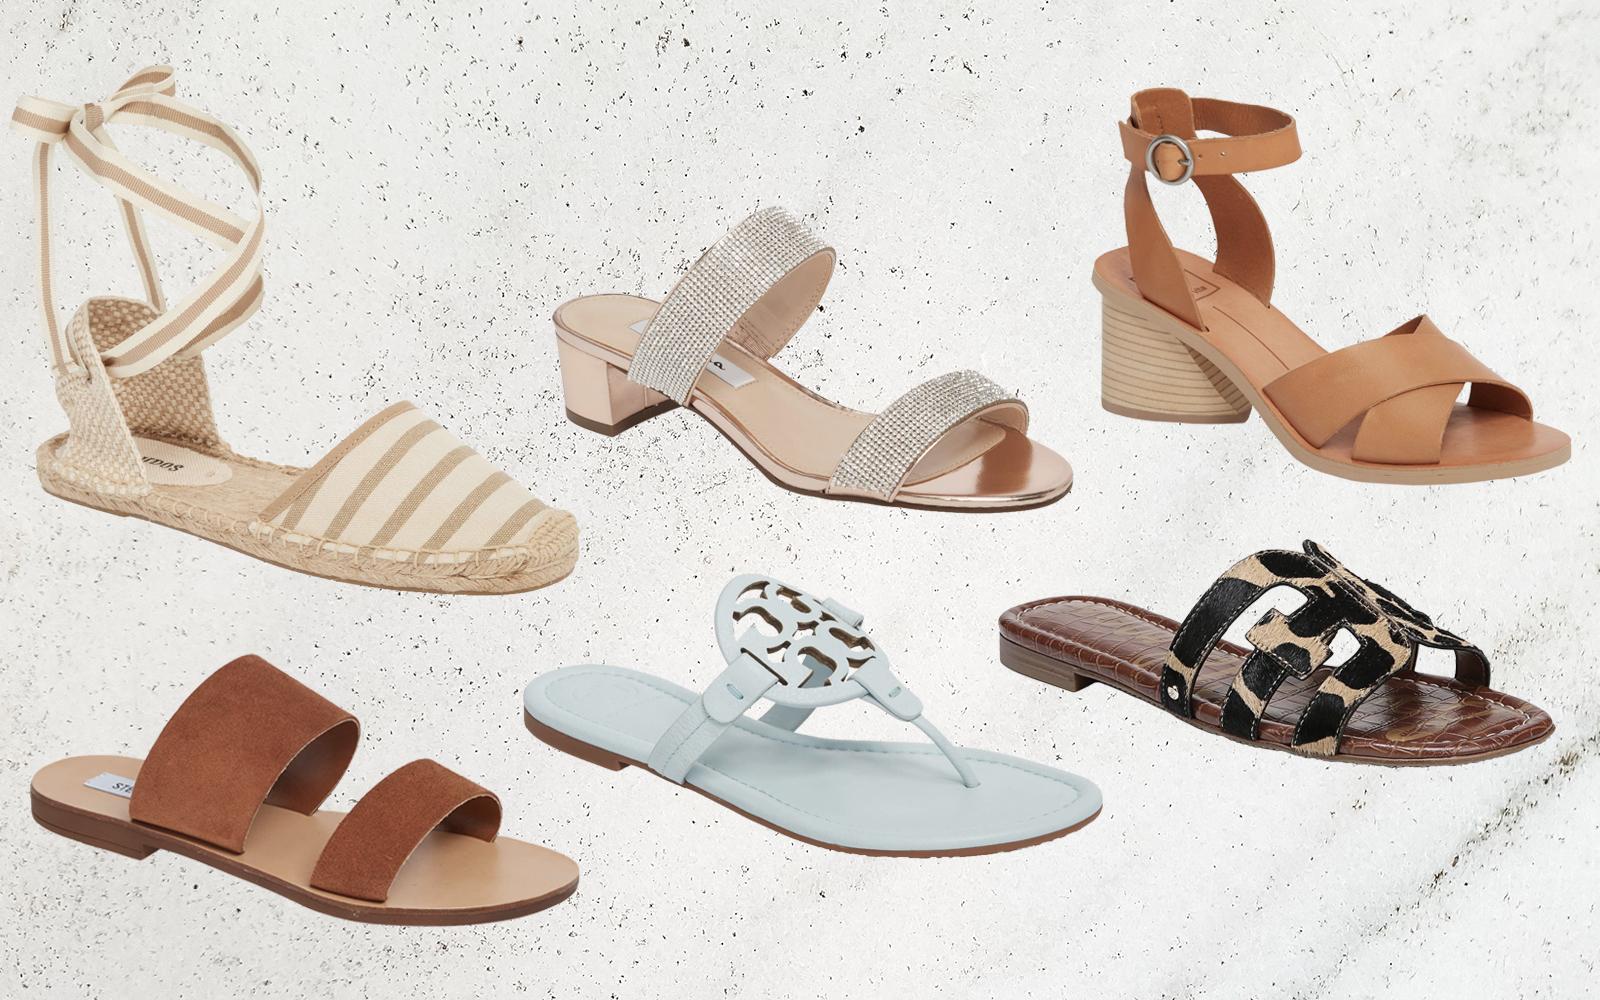 The Best Sandals from Nordstrom's Huge Summer Sale